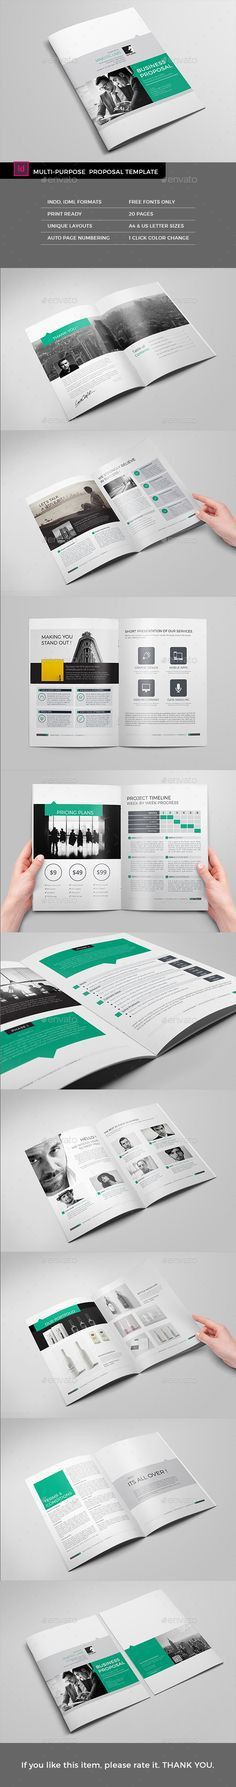 Project Proposal InDesign Template v2 | Project proposal, Indesign ...